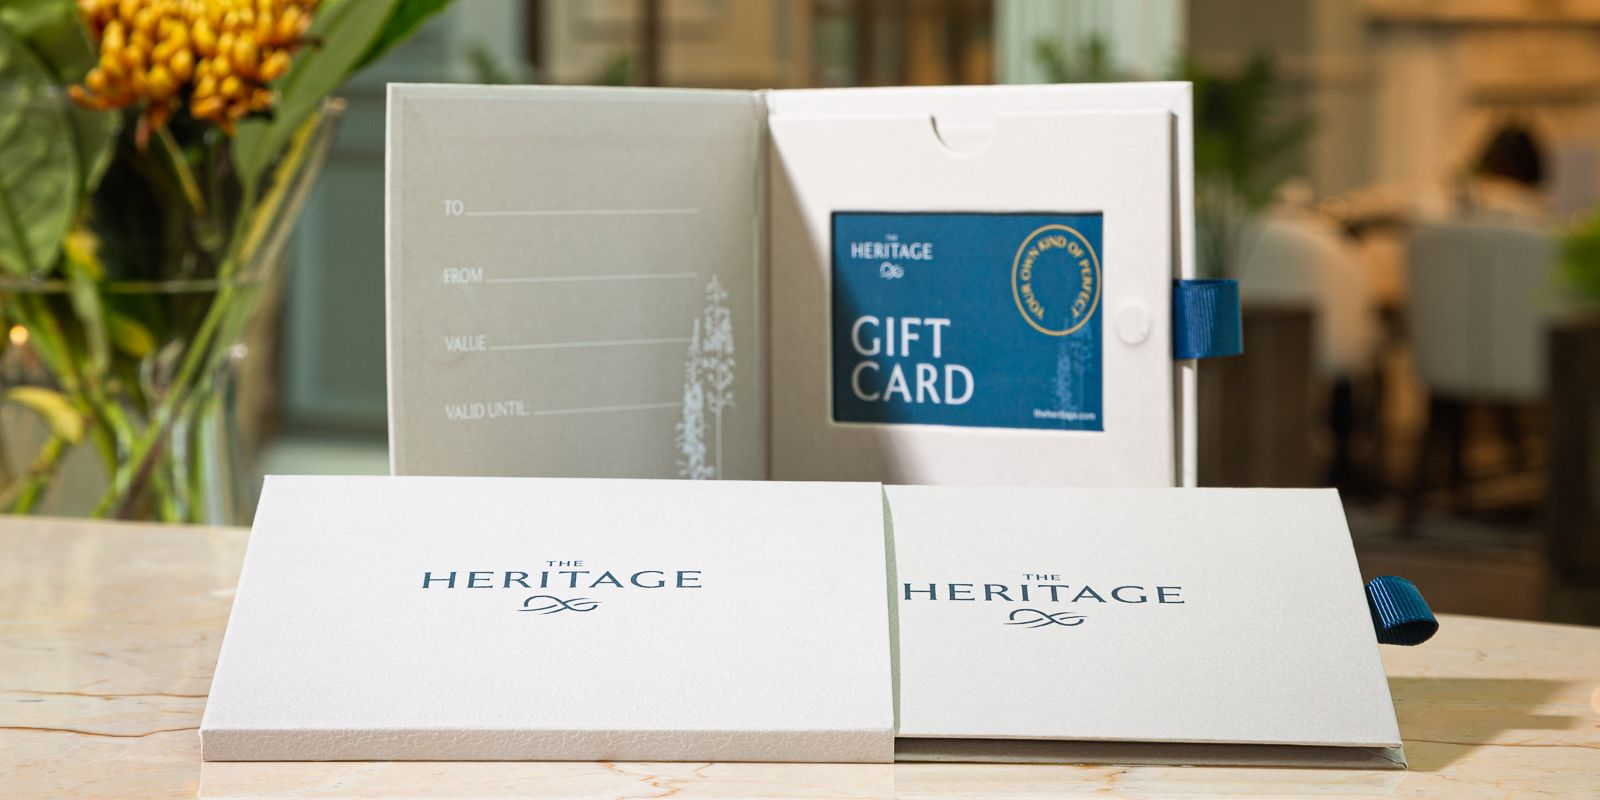 The Heritage Gift Card